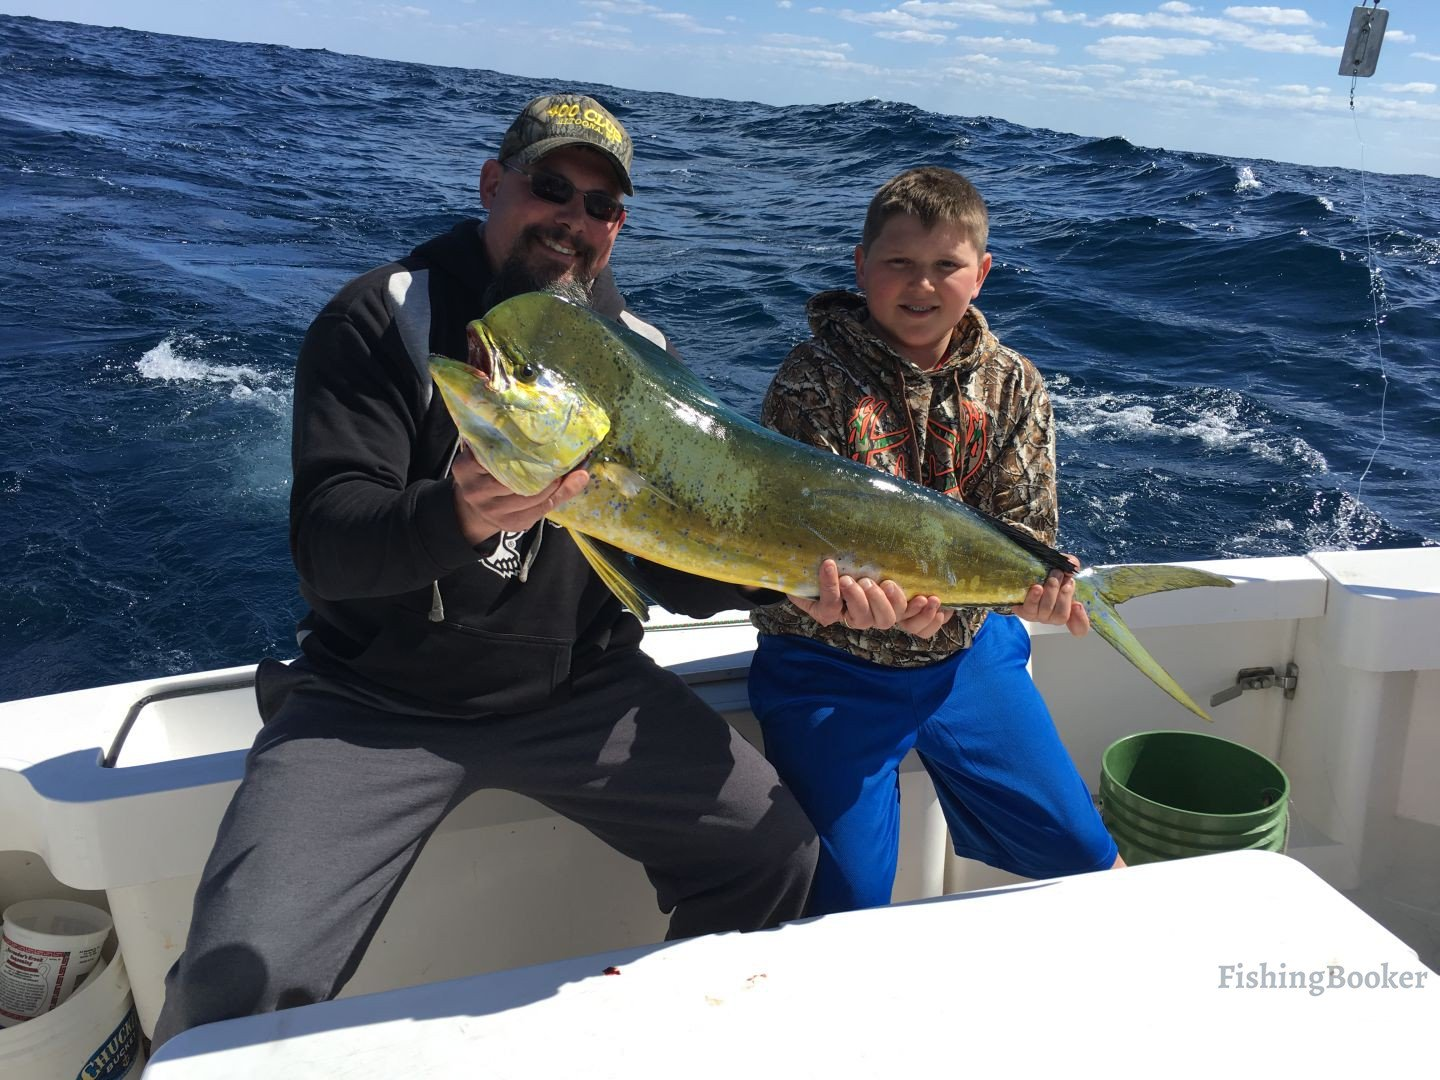 Top 10 fishing charters in ponce inlet fl fishingbooker for Ponce inlet fishing